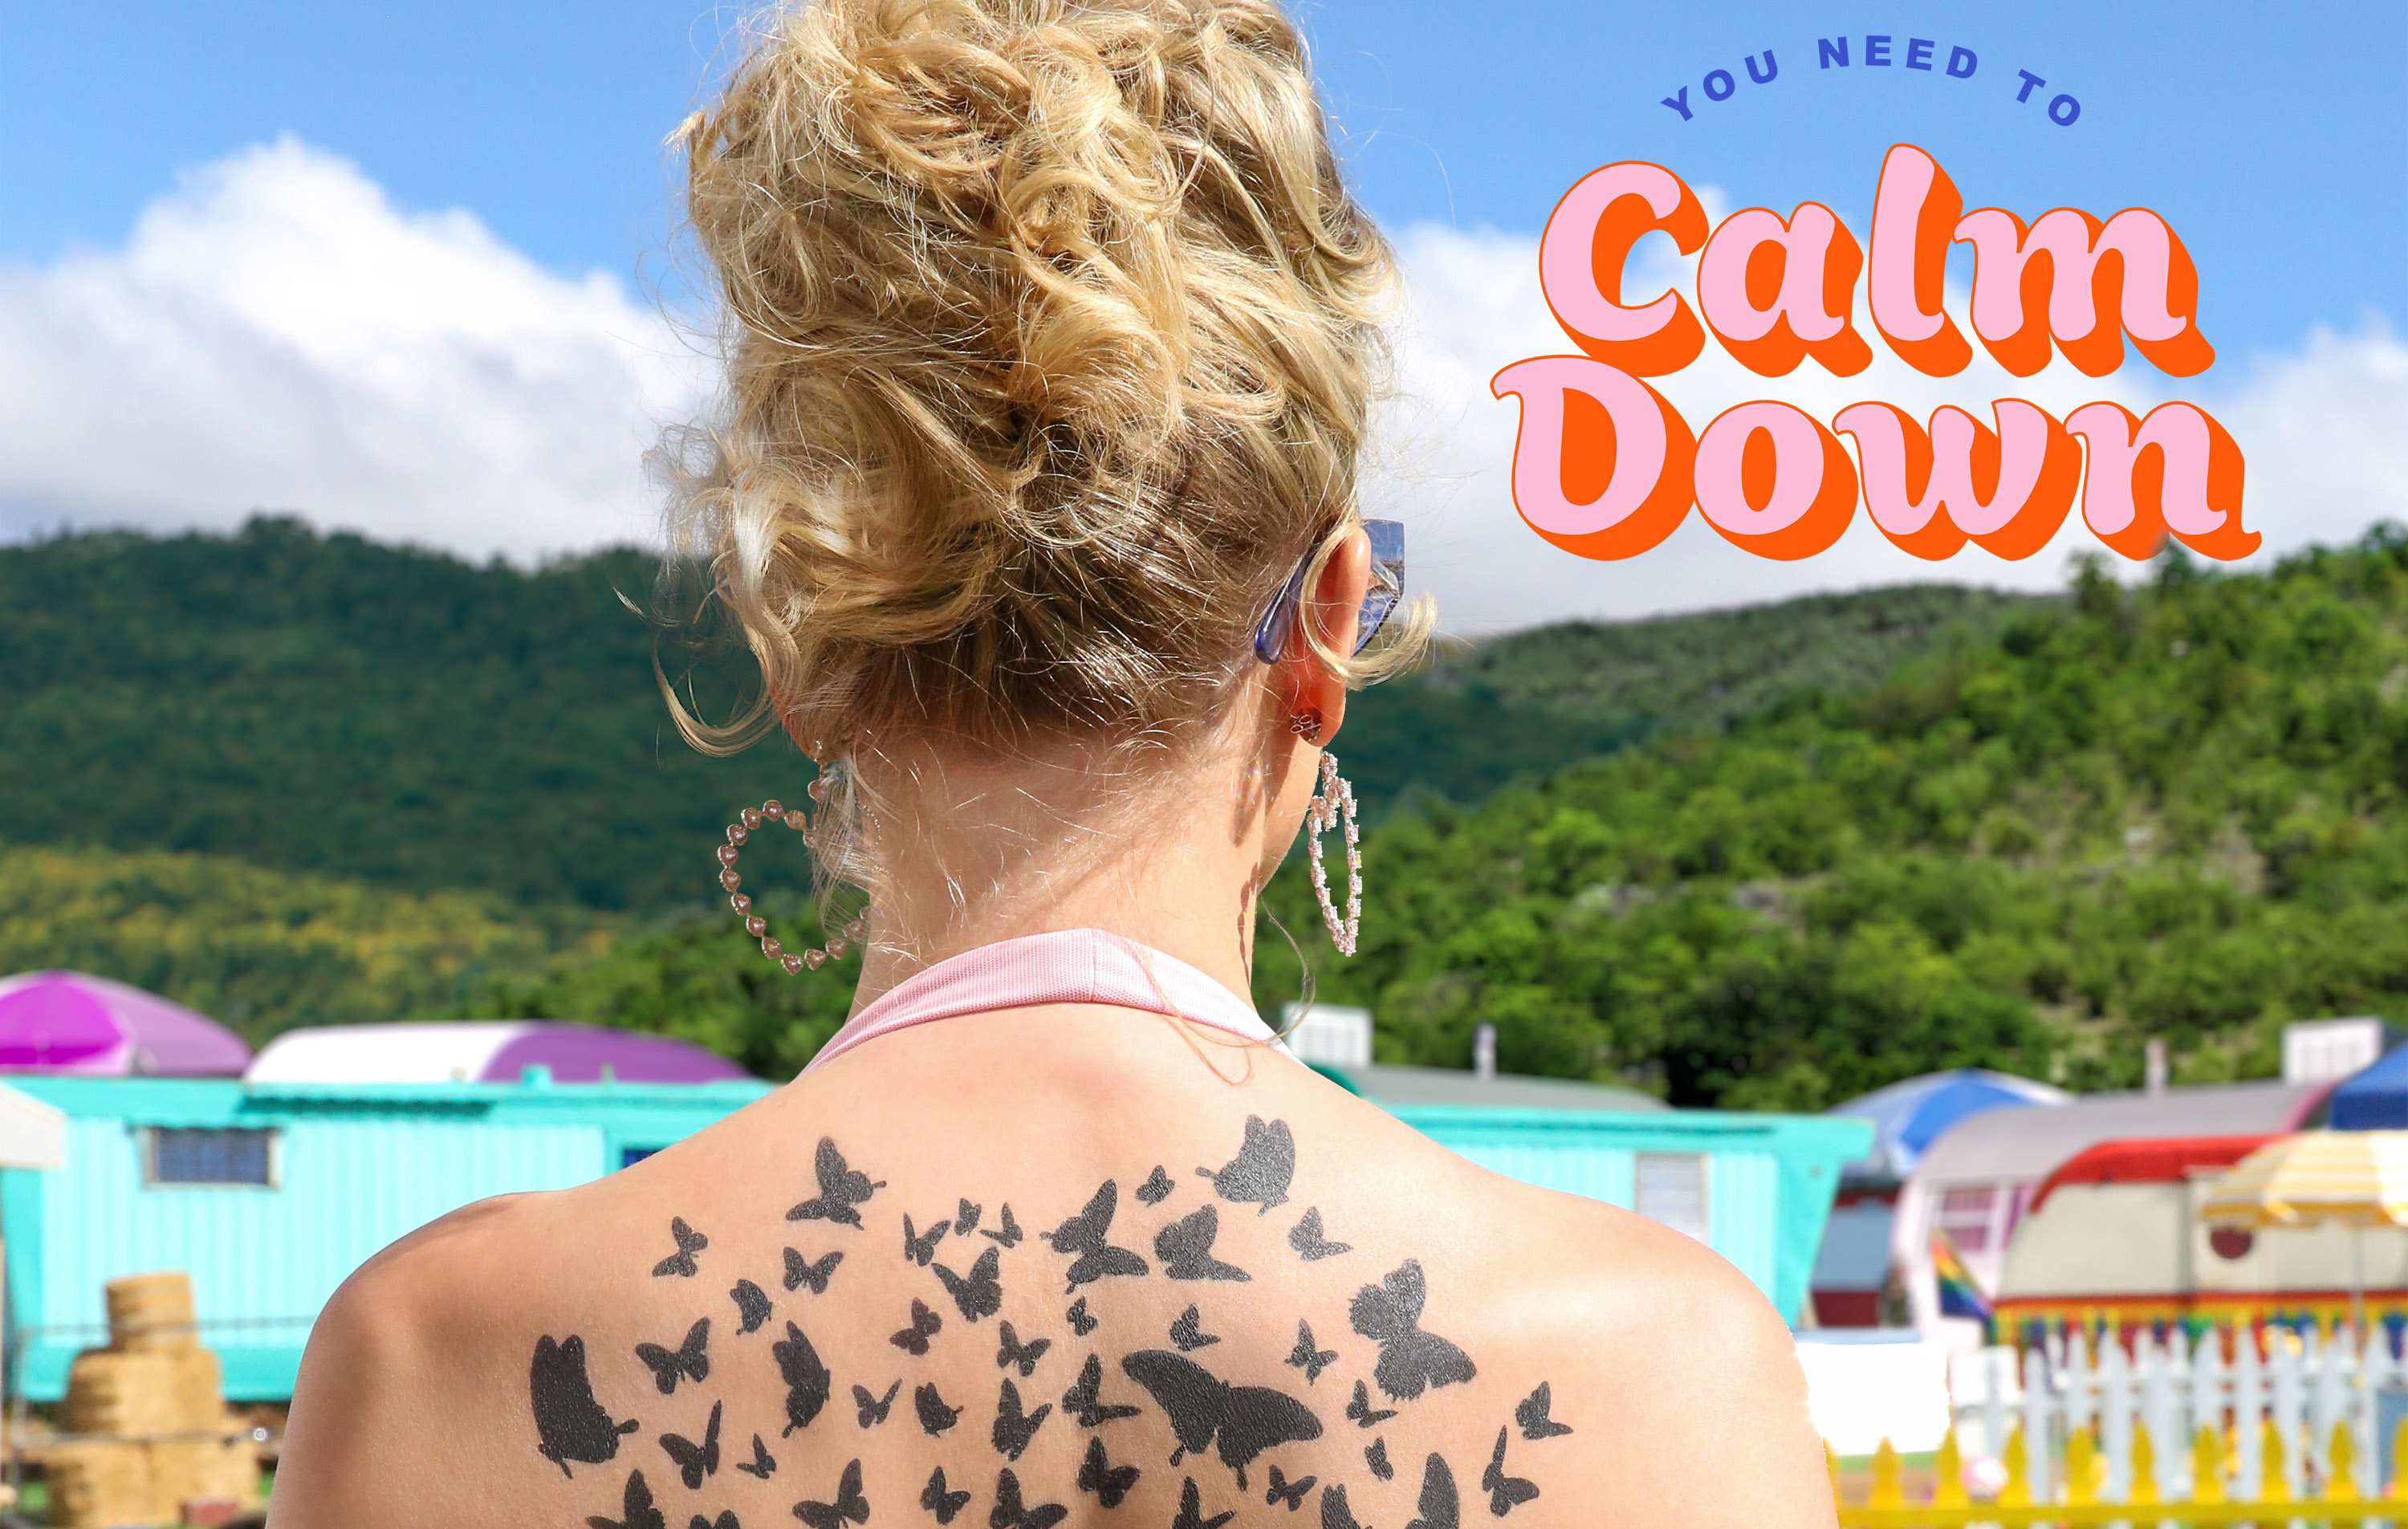 Taylor Swift's 'You Need to Calm Down' Out: The Song Features Countless Cameos